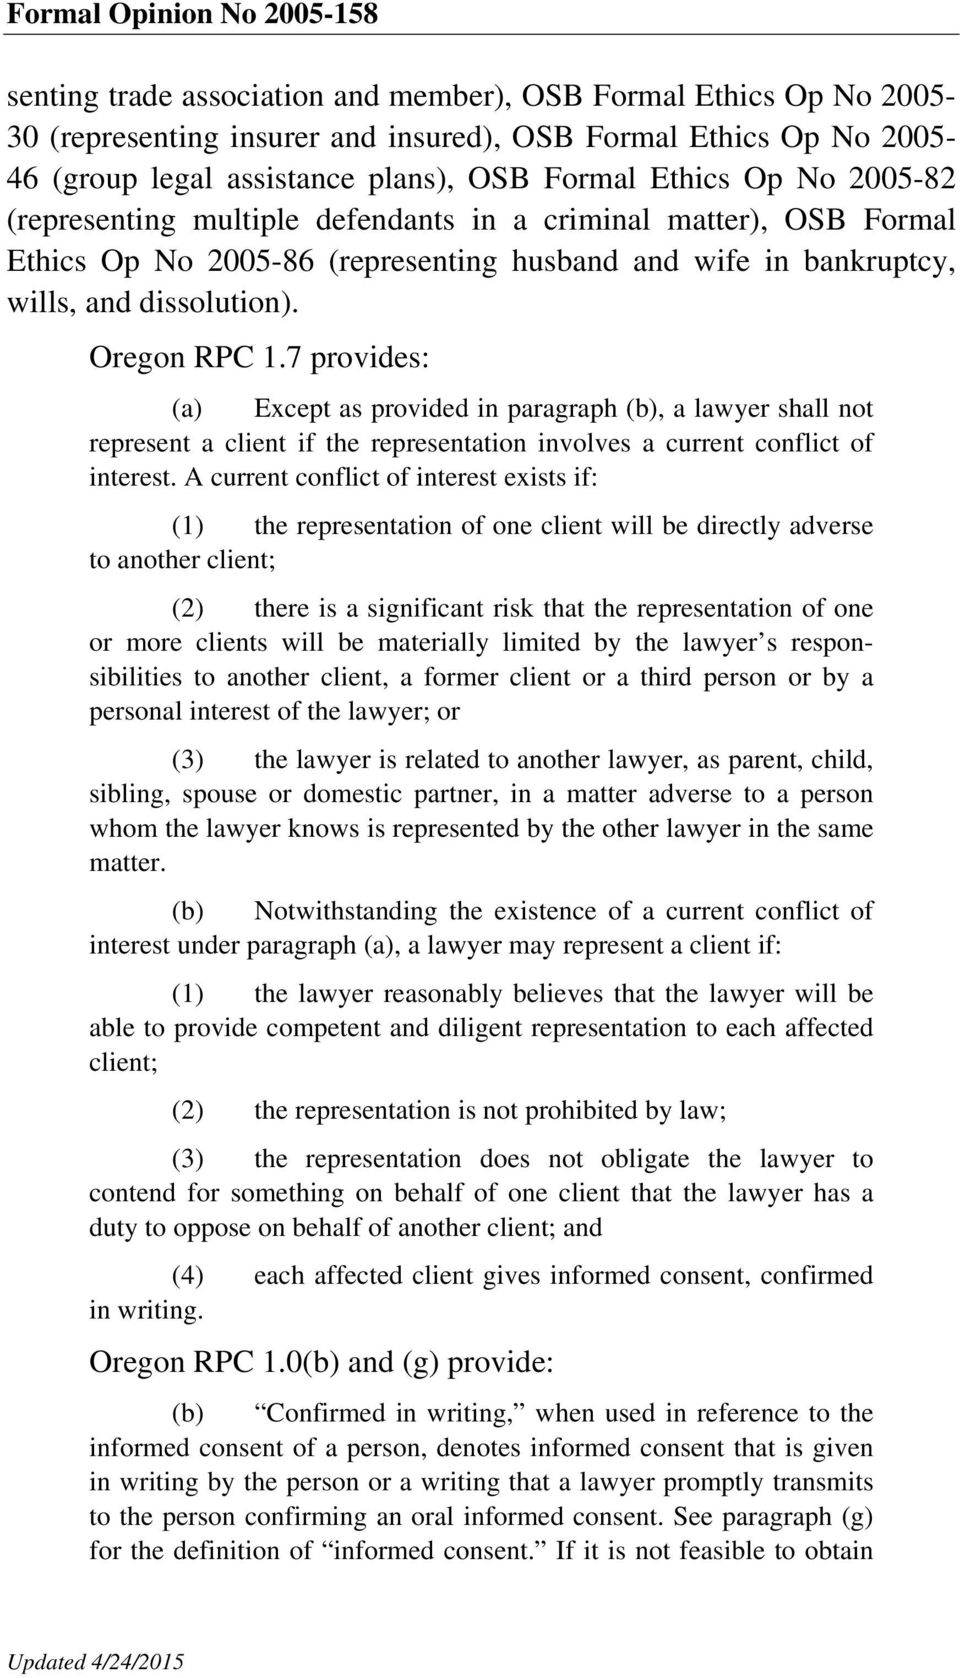 7 provides: (a) Except as provided in paragraph (b), a lawyer shall not represent a client if the representation involves a current conflict of interest.